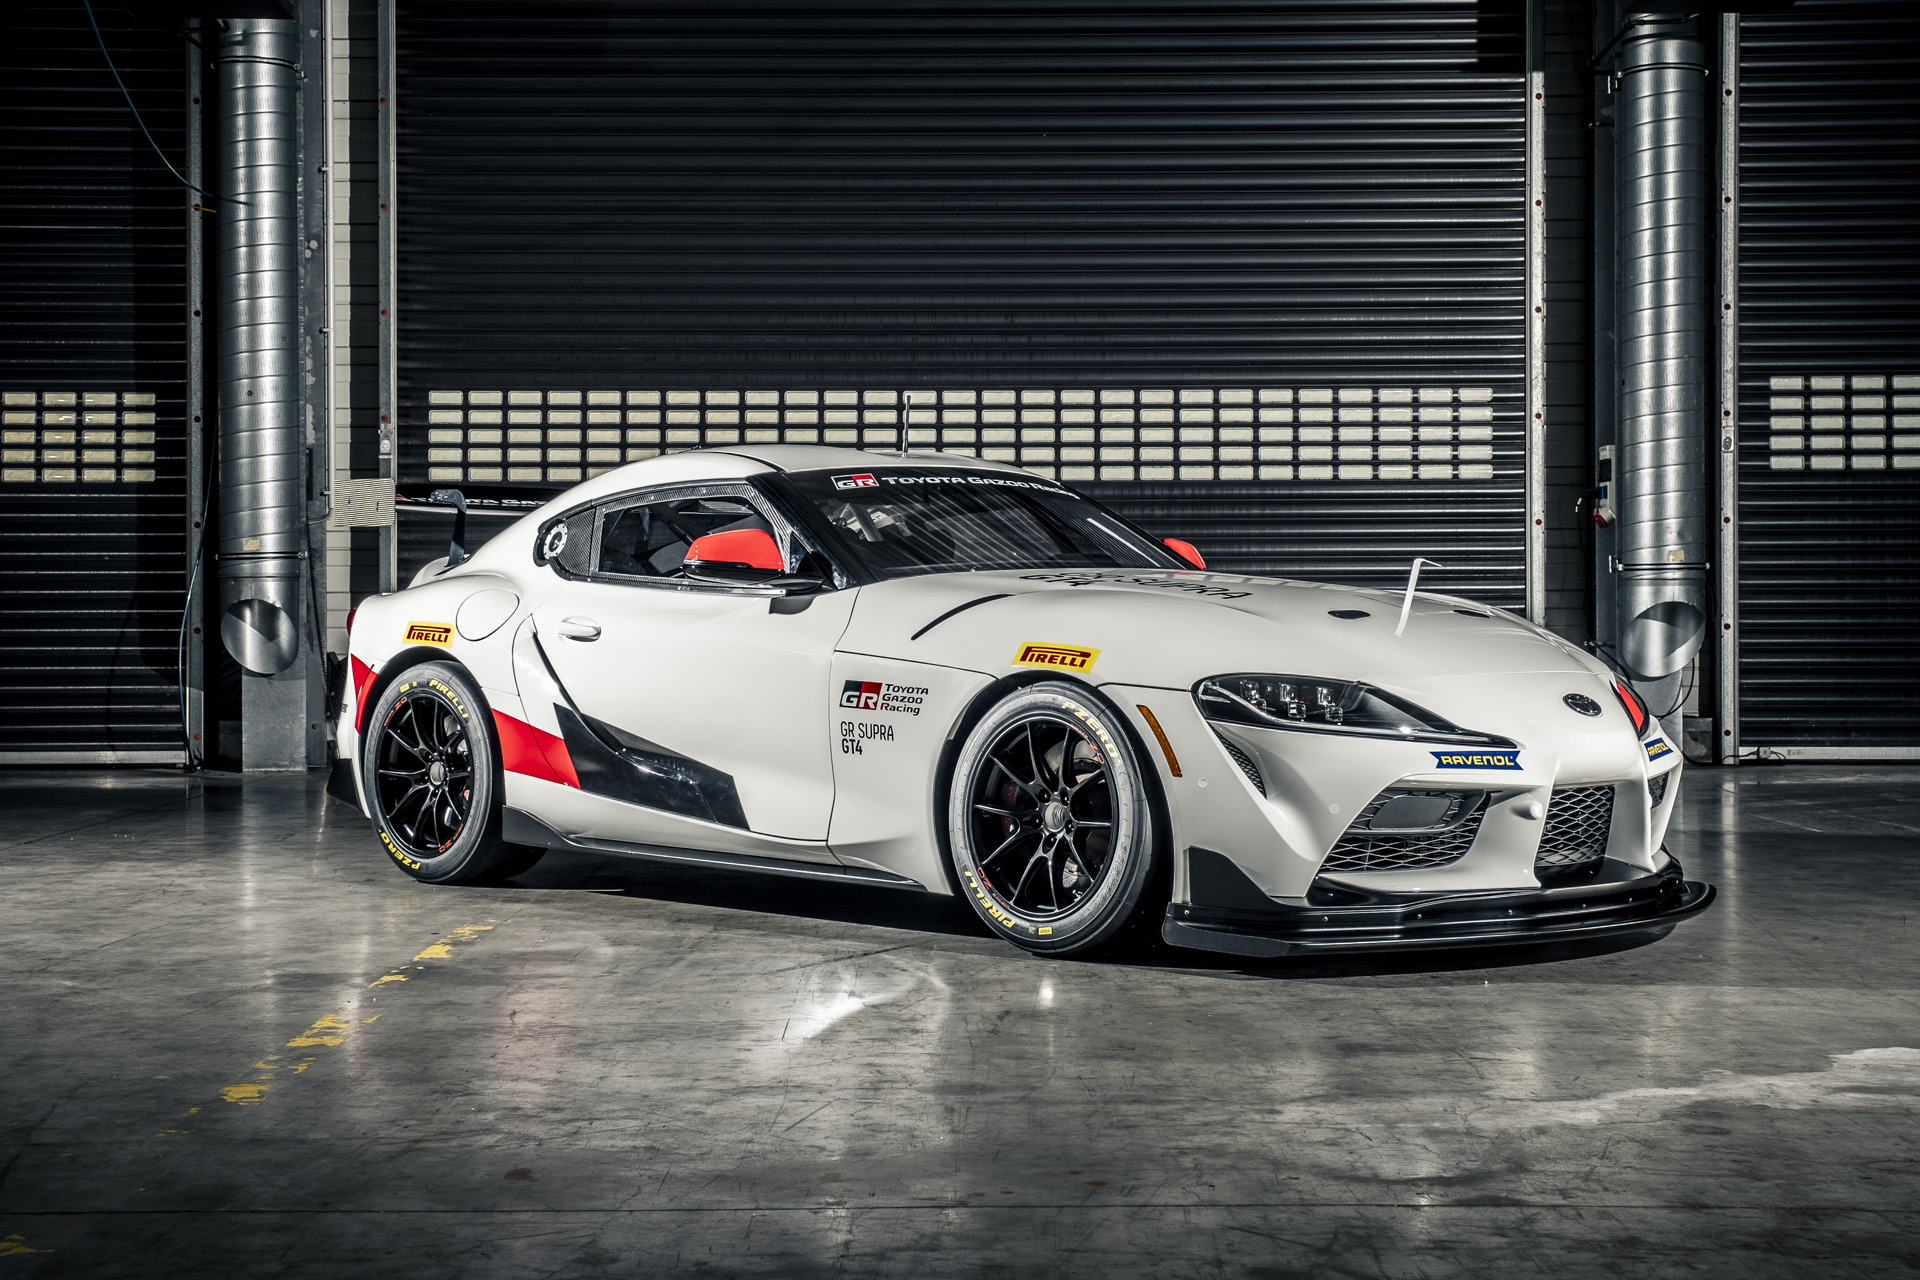 Toyota Supra Gt4 Customer Race Car Launches In 2020